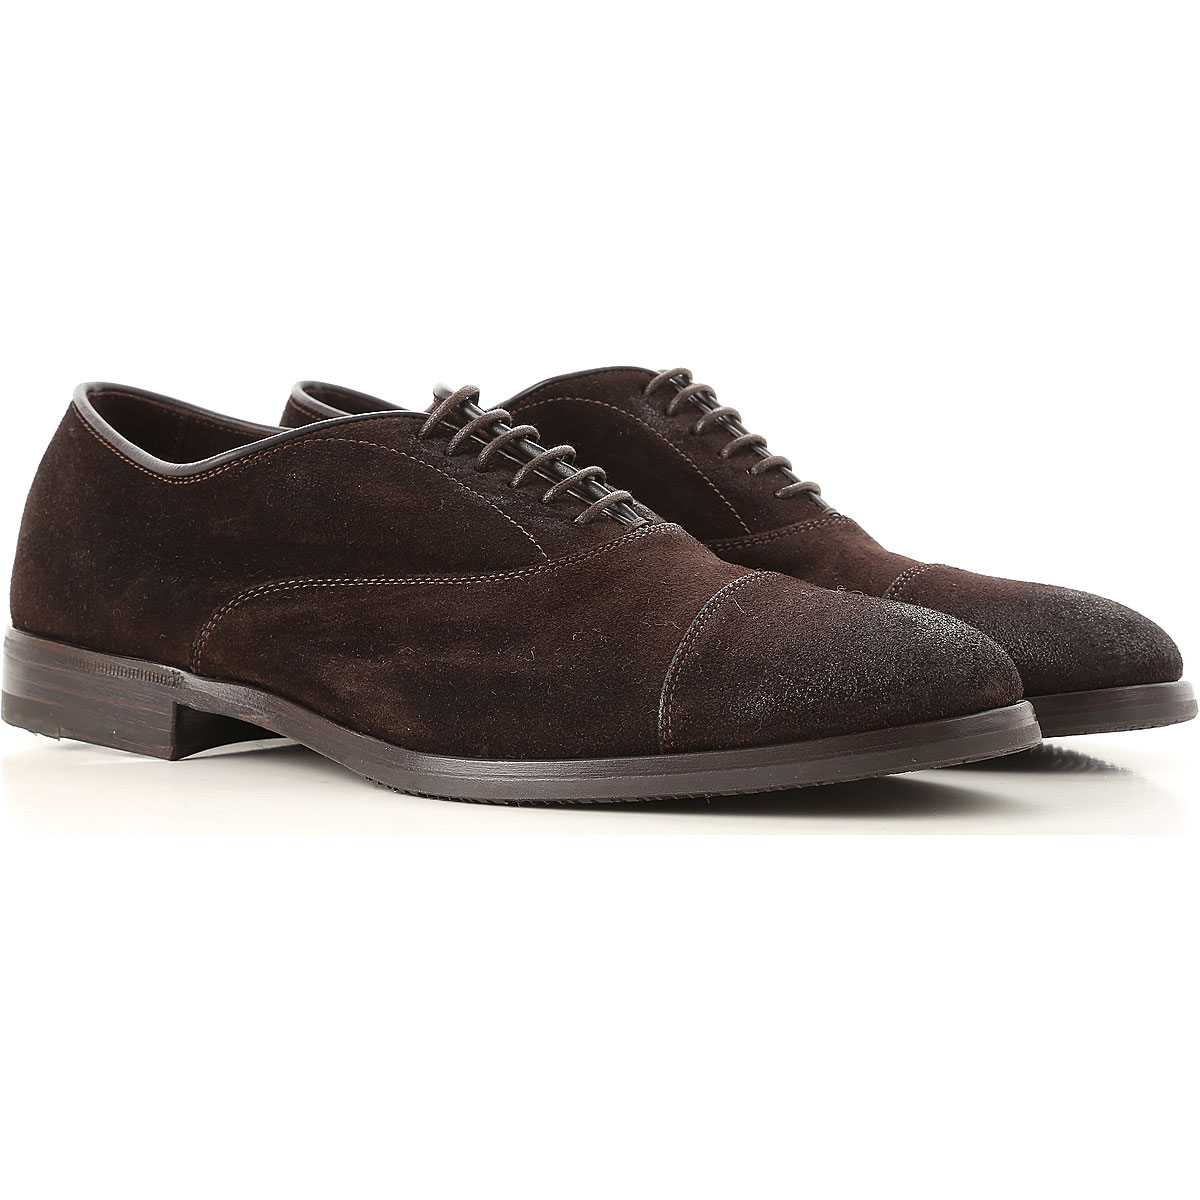 Image of Henderson Lace Up Shoes for Men Oxfords, Derbies and Brogues, Dark Brown, suede, 2017, 10 10.5 11 11.5 7 7.5 8 8.5 9 9.5